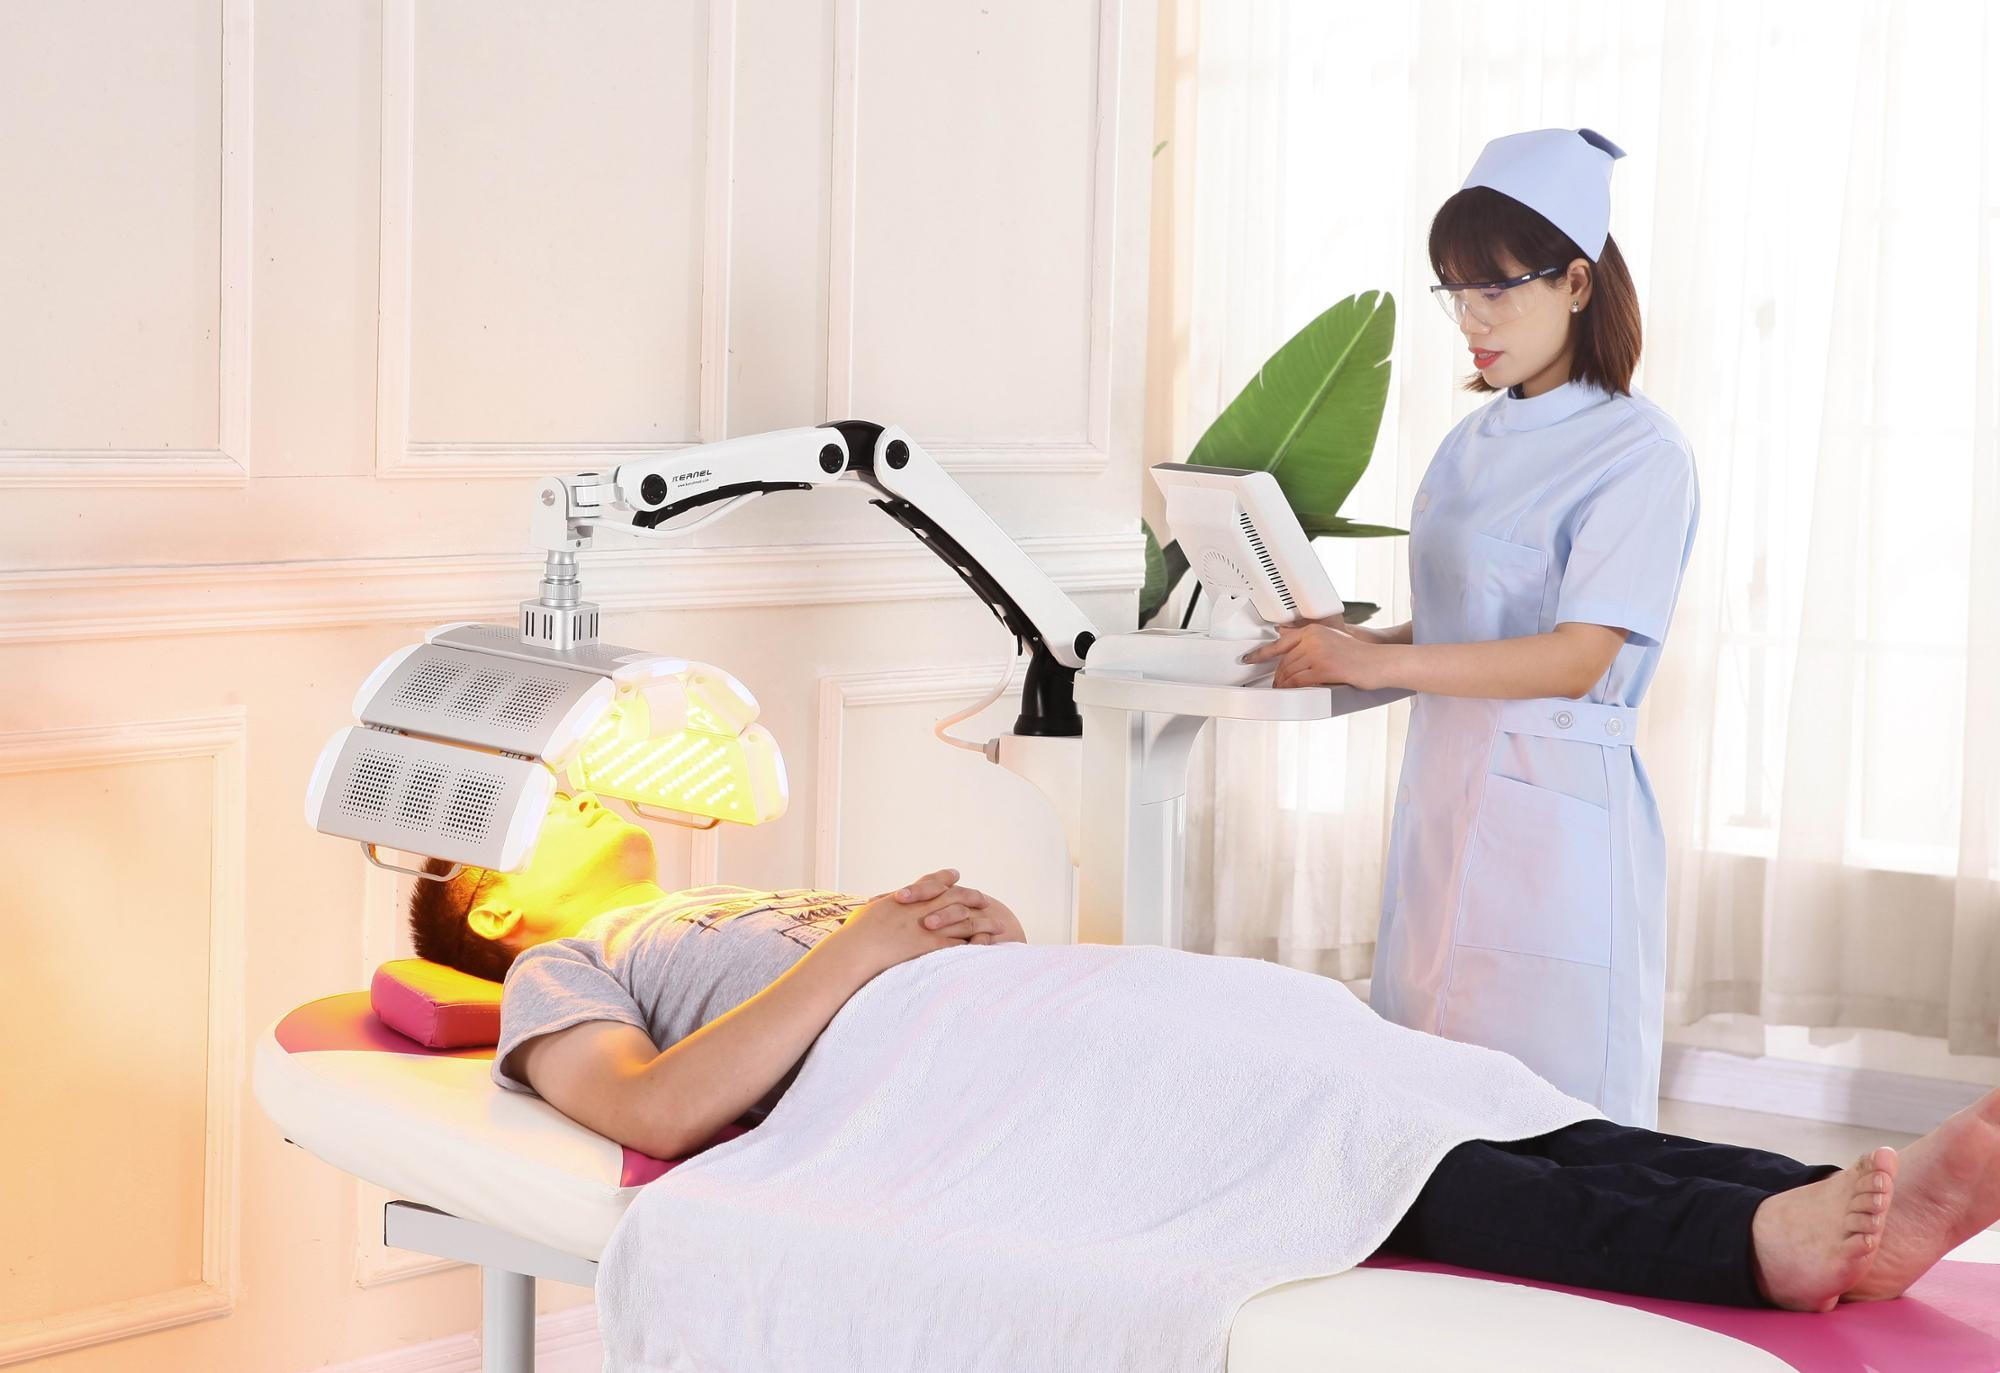 Professional Photodynamic LED Light Therapy Machine KN-7000D Manufacturers, Professional Photodynamic LED Light Therapy Machine KN-7000D Factory, Supply Professional Photodynamic LED Light Therapy Machine KN-7000D